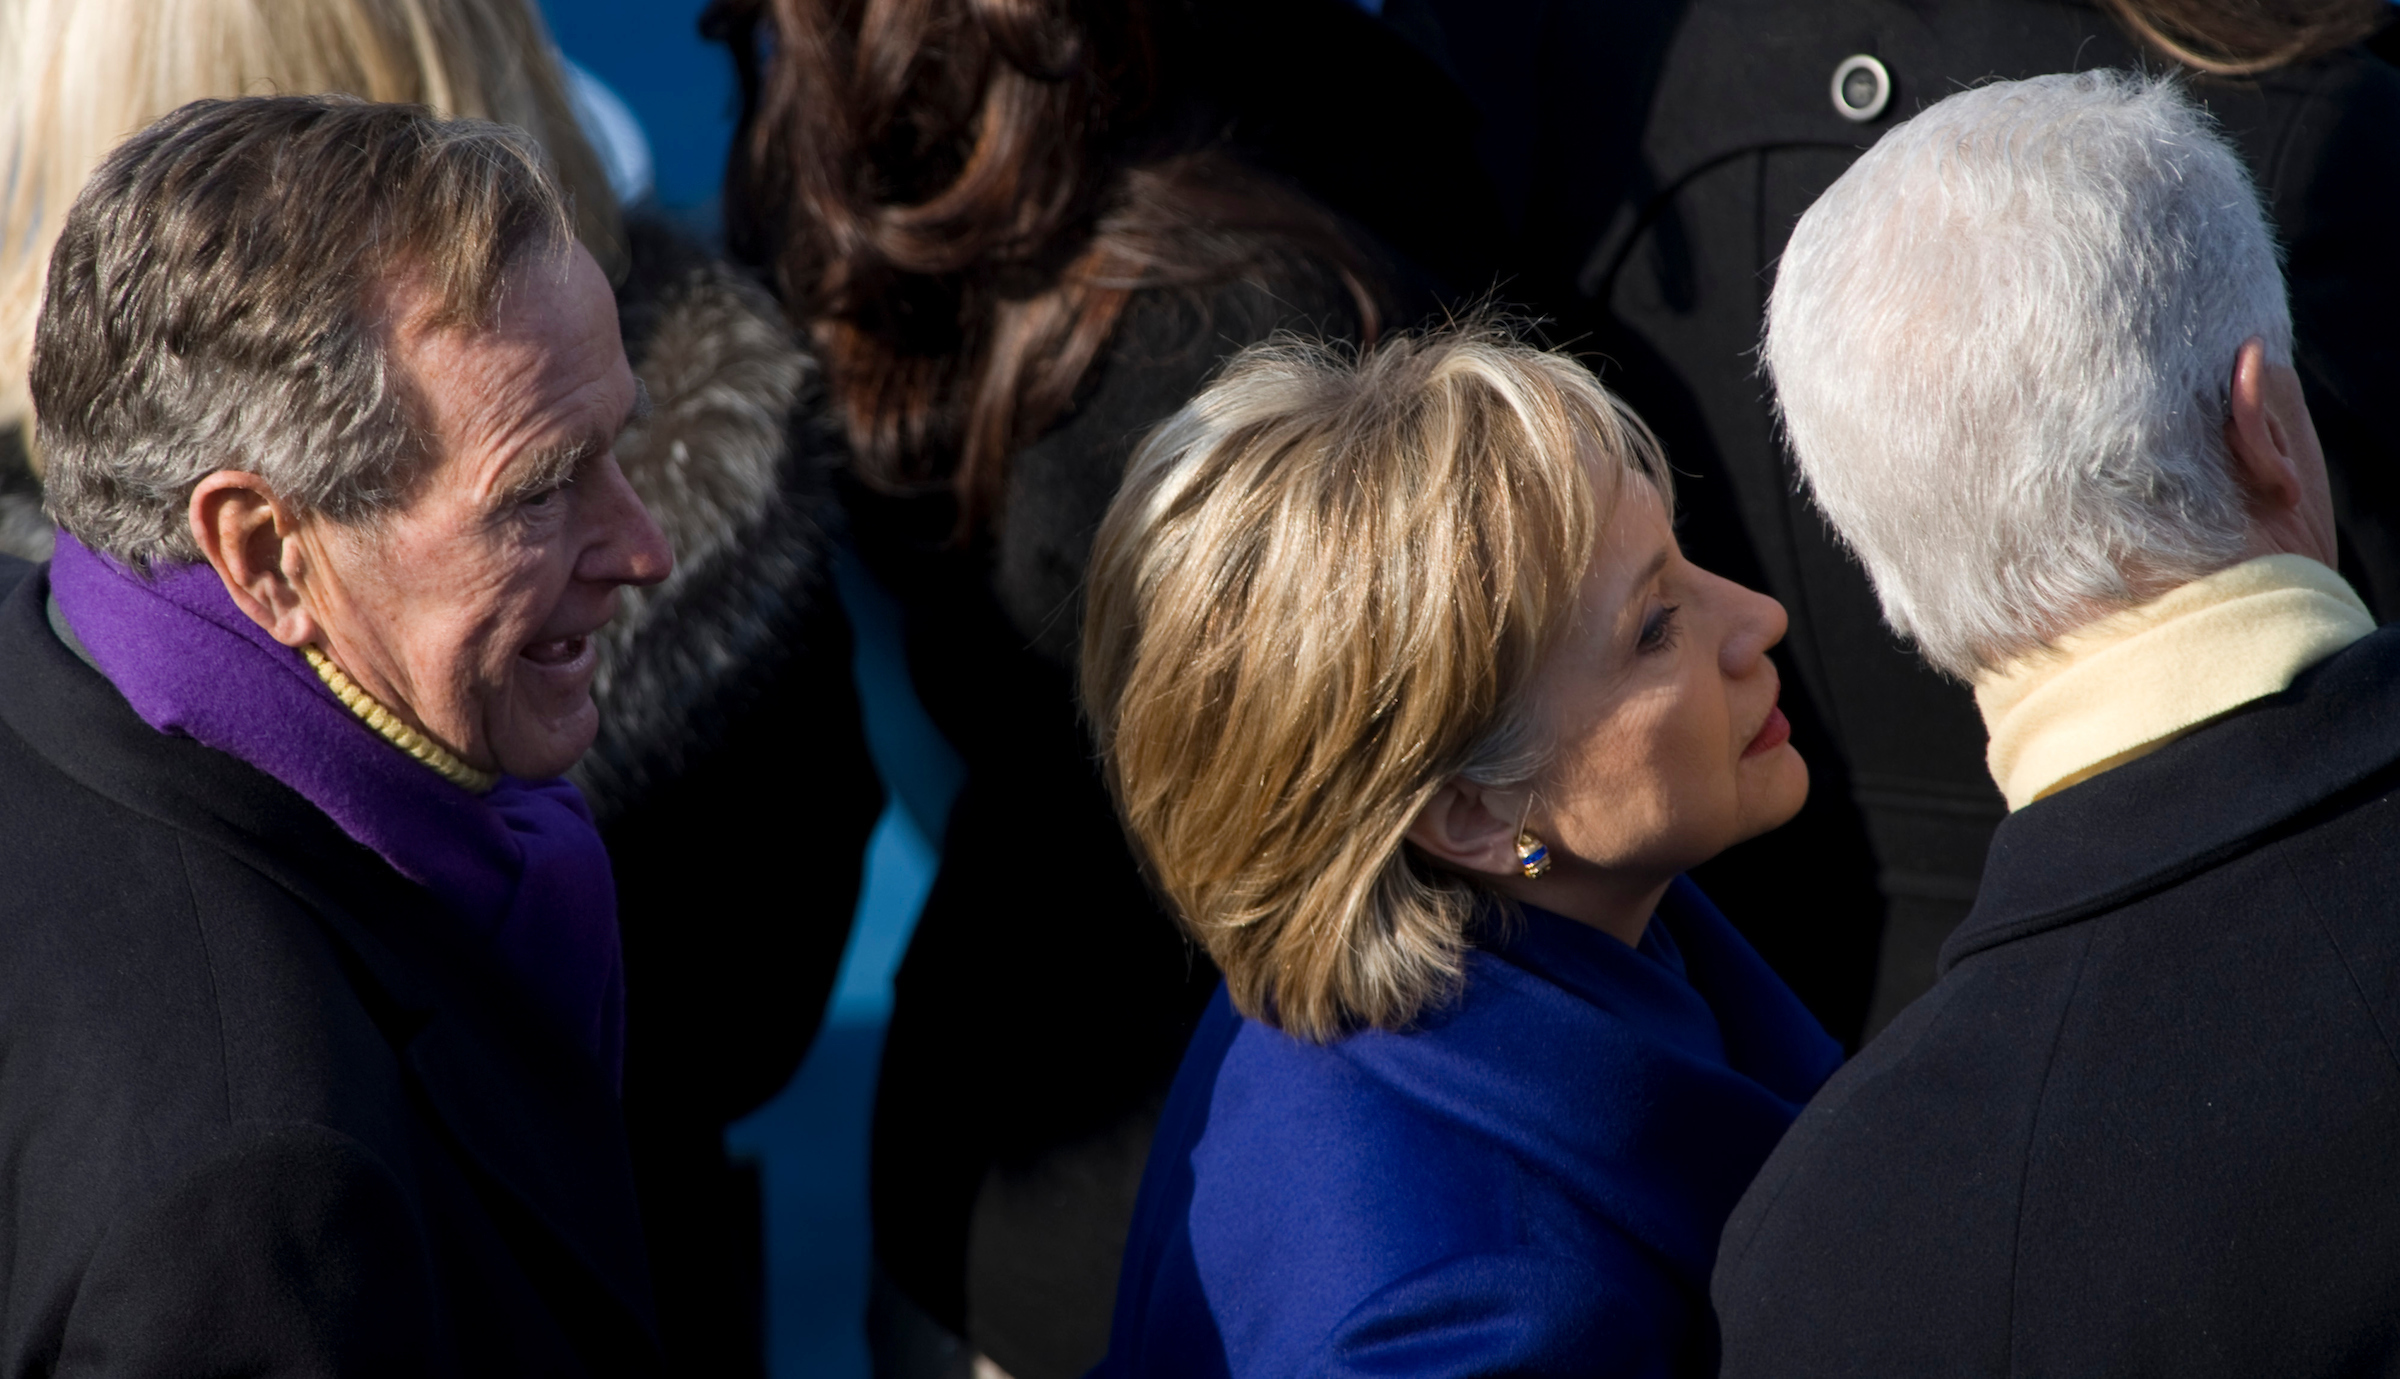 Former President George Bush watches and Hillary Clinton whispers in Former President Bill Clinton's ear during the Inauguration Ceremony for President Barack Obama on the West Front of the U.S. Capitol on Tuesday, Jan. 20, 2009. (CQ Roll Call Archive Photo)